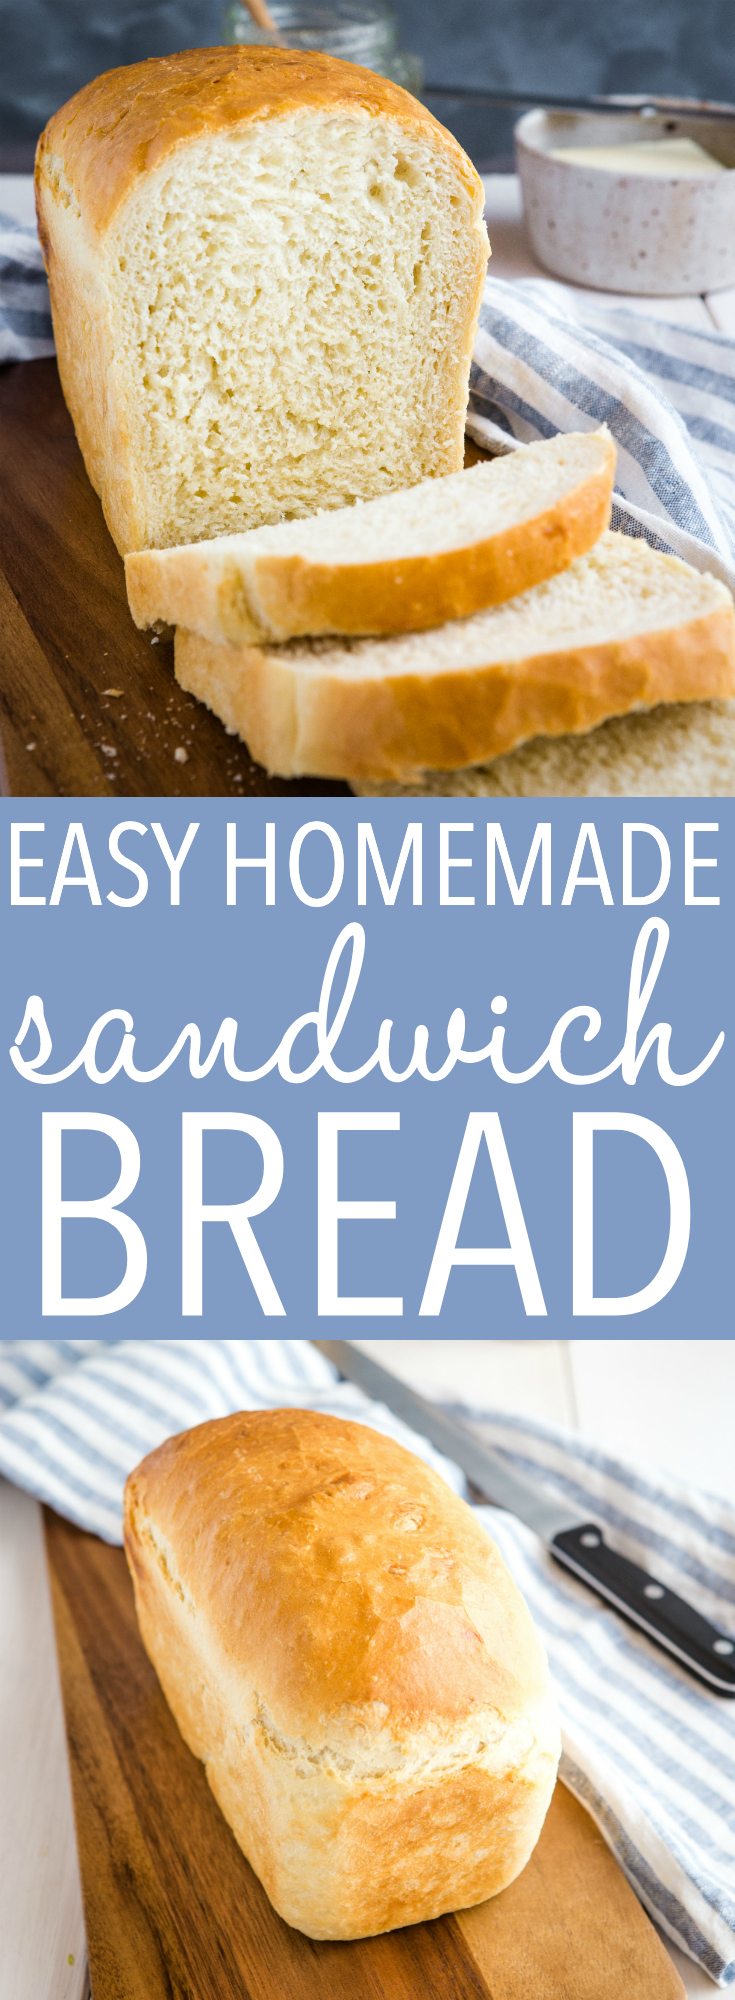 This Easy White Sandwich Bread is the easiest homemade bread recipe that's hearty and tender, and turns out perfectly every time with the best golden crust! Perfect for sandwiches or for dipping in soups or stews! Recipe from thebusybaker.ca! #bread #sandwich #homemadebread #homemade #recipe #baking #easy #simple #homesteading #canning via @busybakerblog